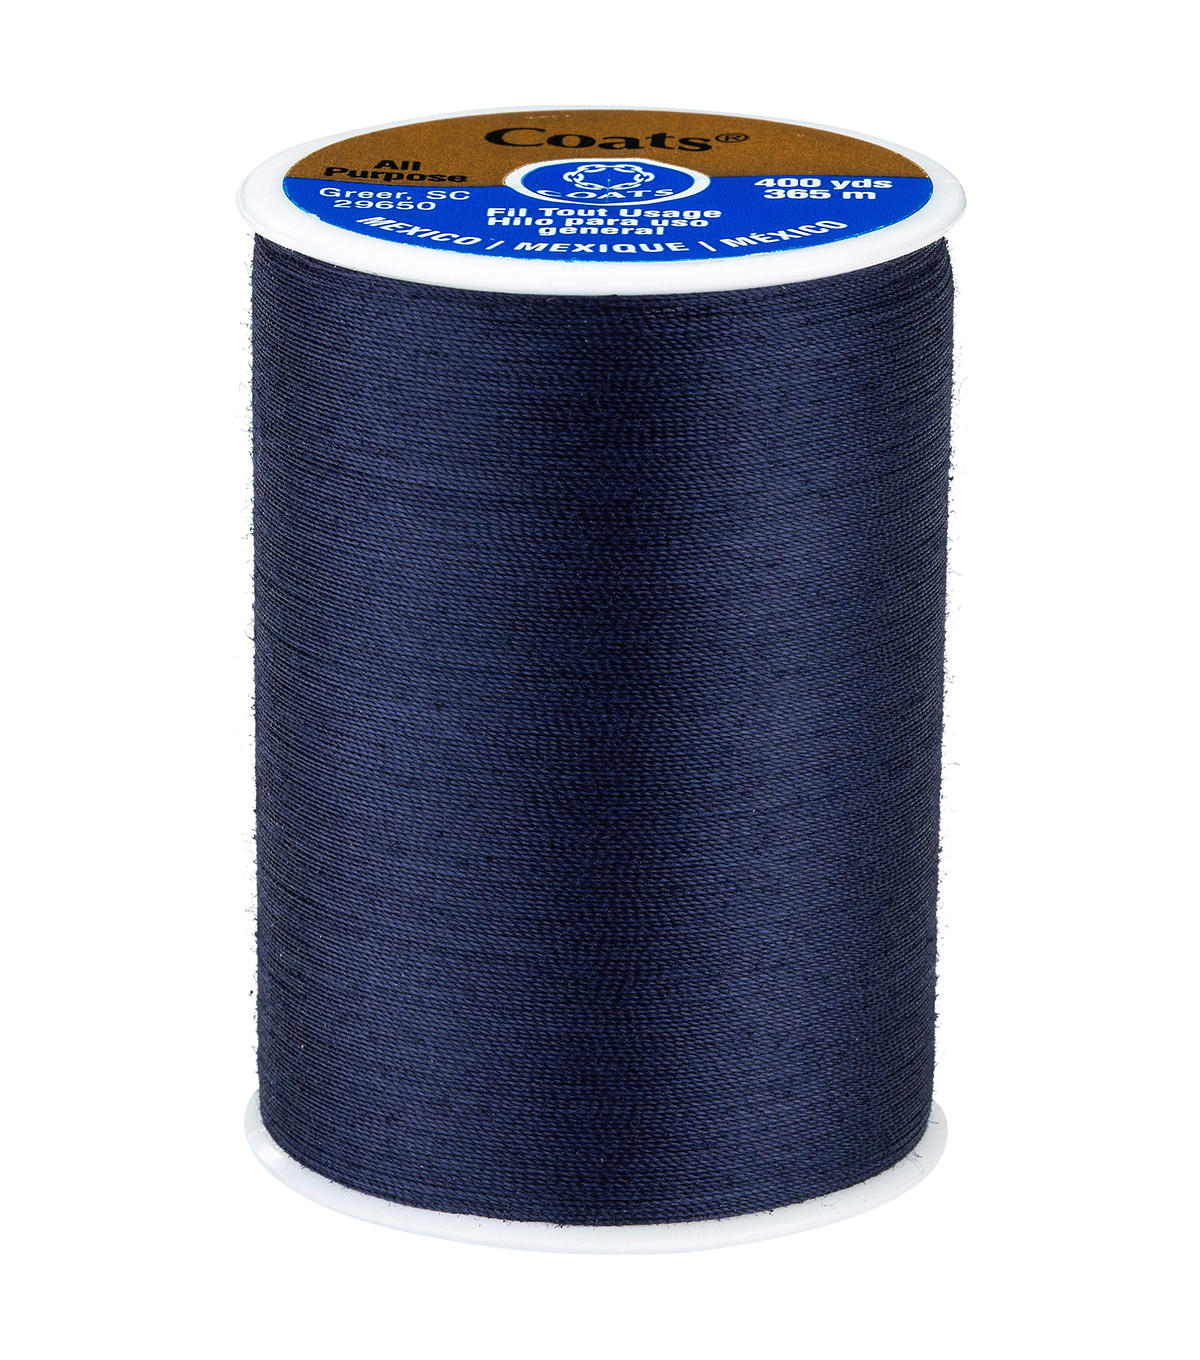 Coats & Clark Dual Duty Thread-400yds, Navy